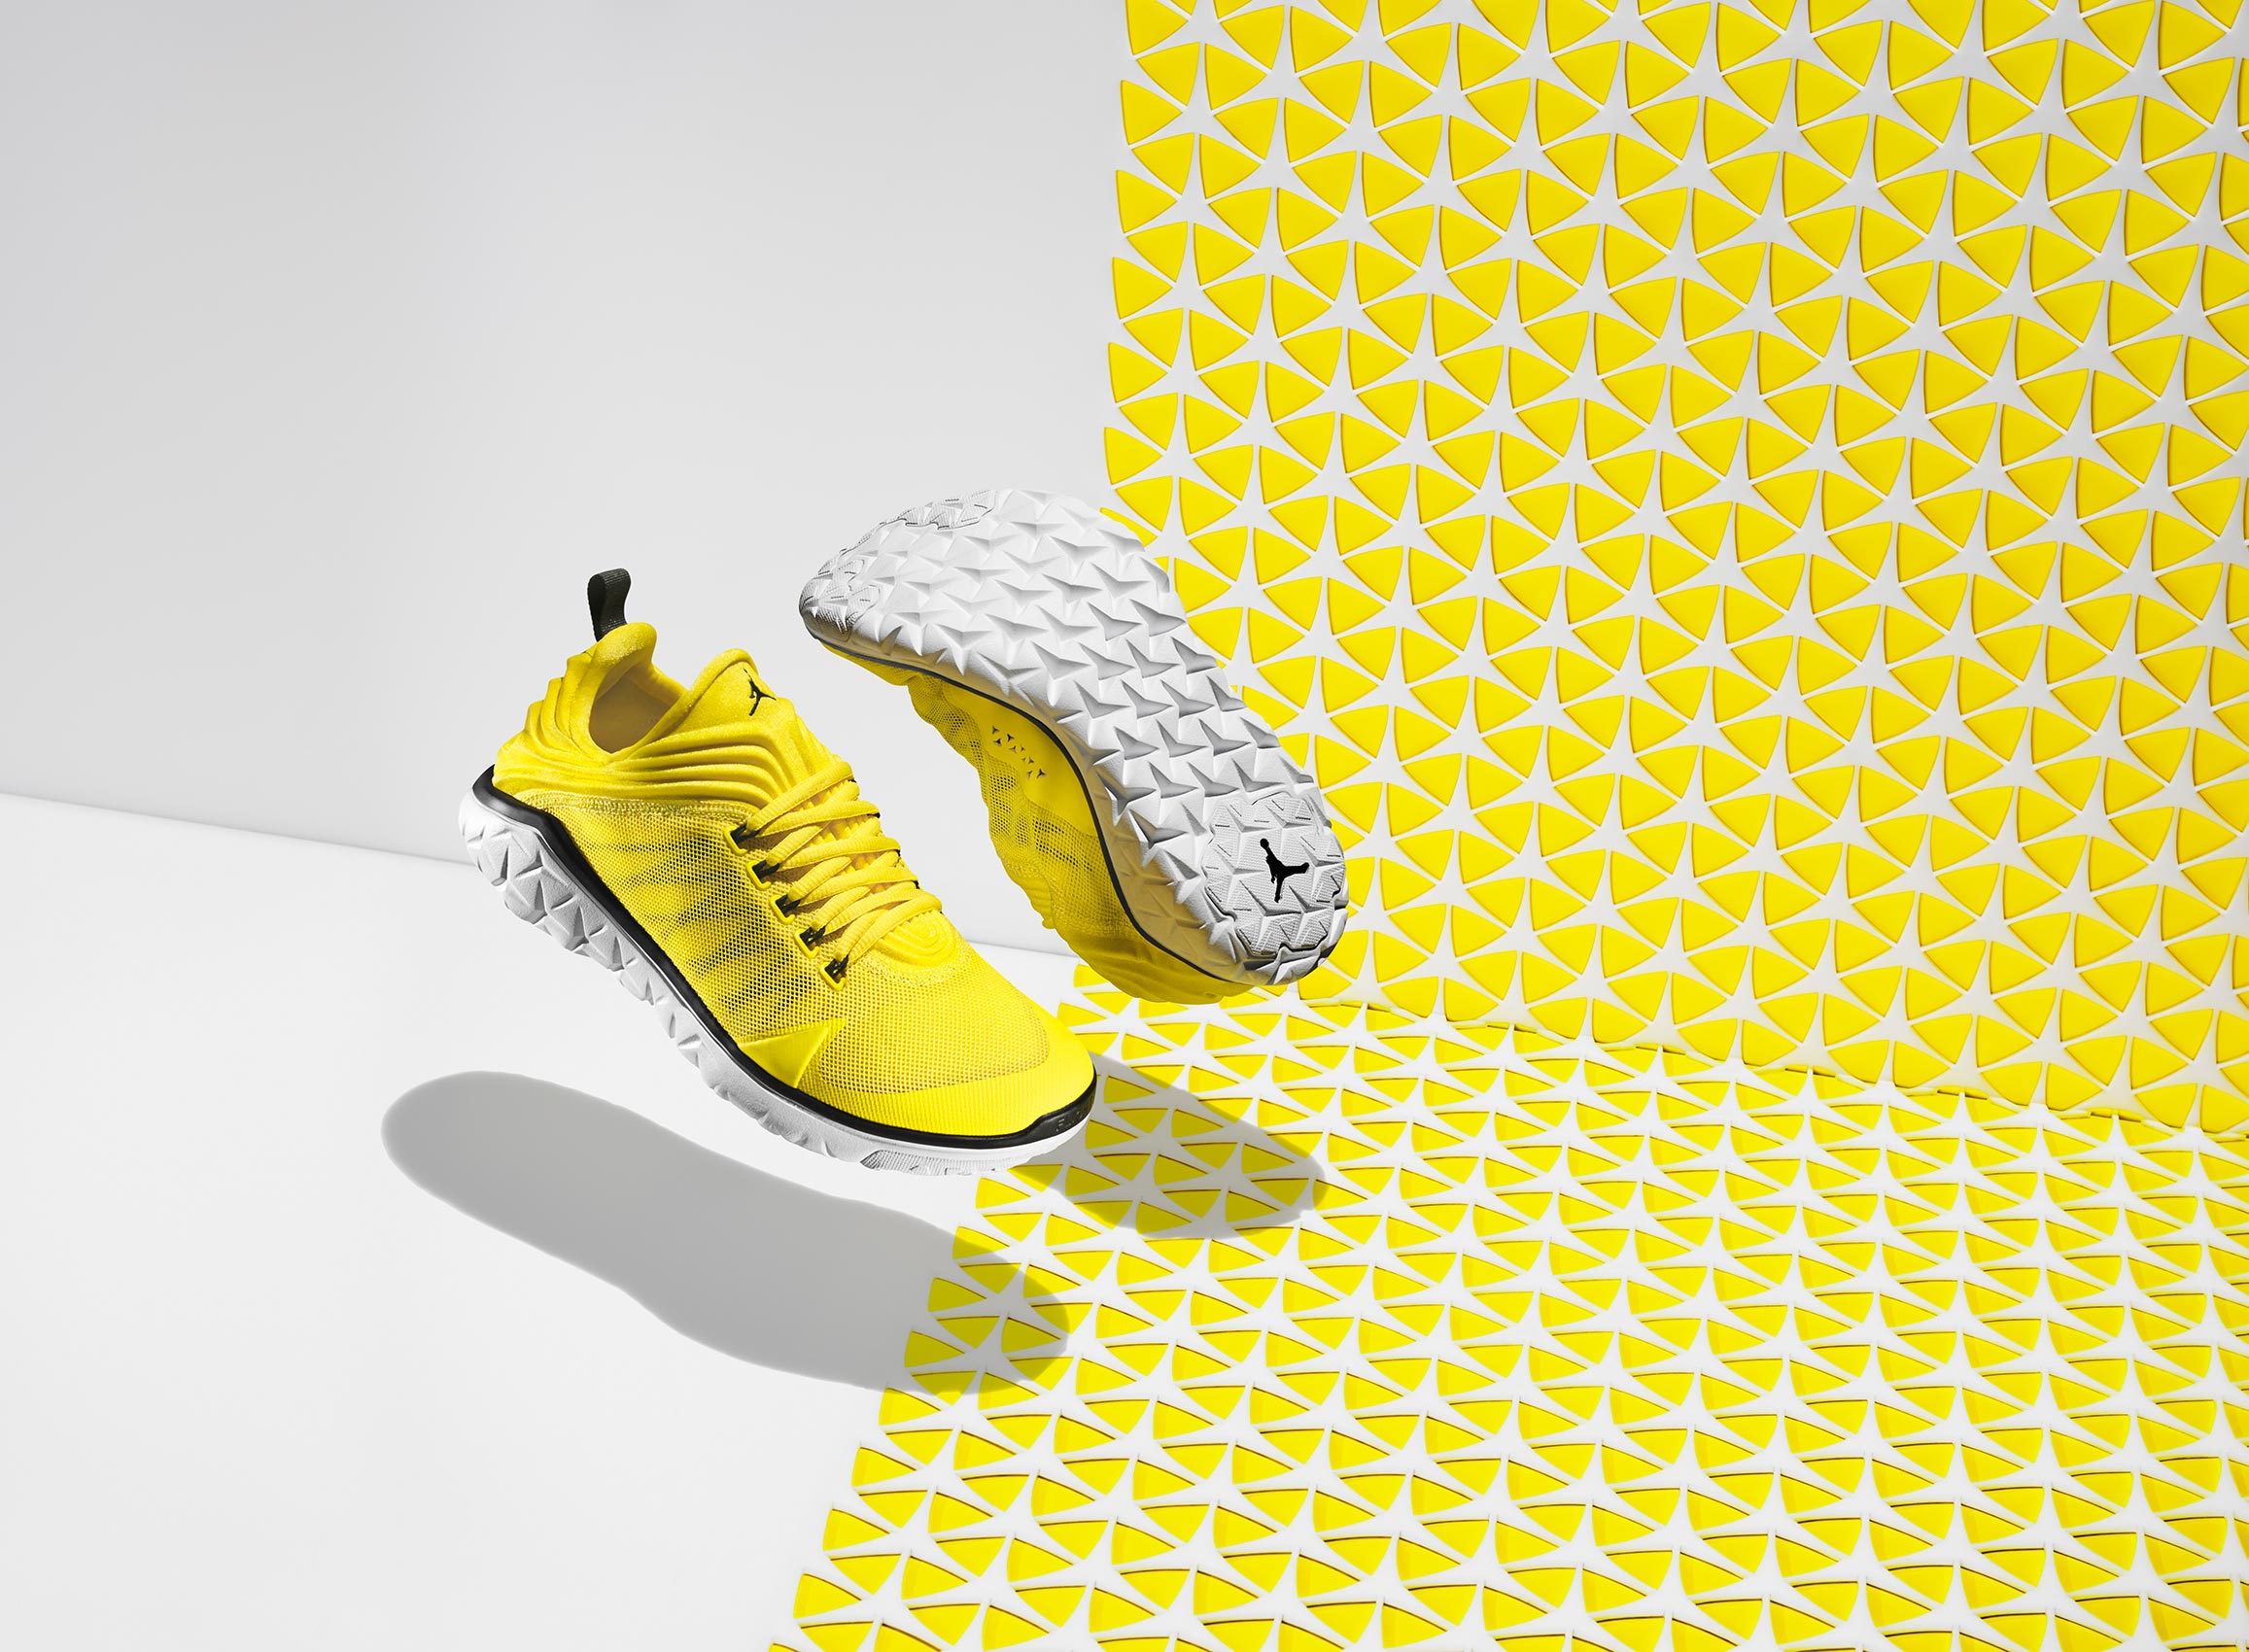 Nike / Agency: in-house (Nike Jordon) / Photographer: ©Mark Hooper